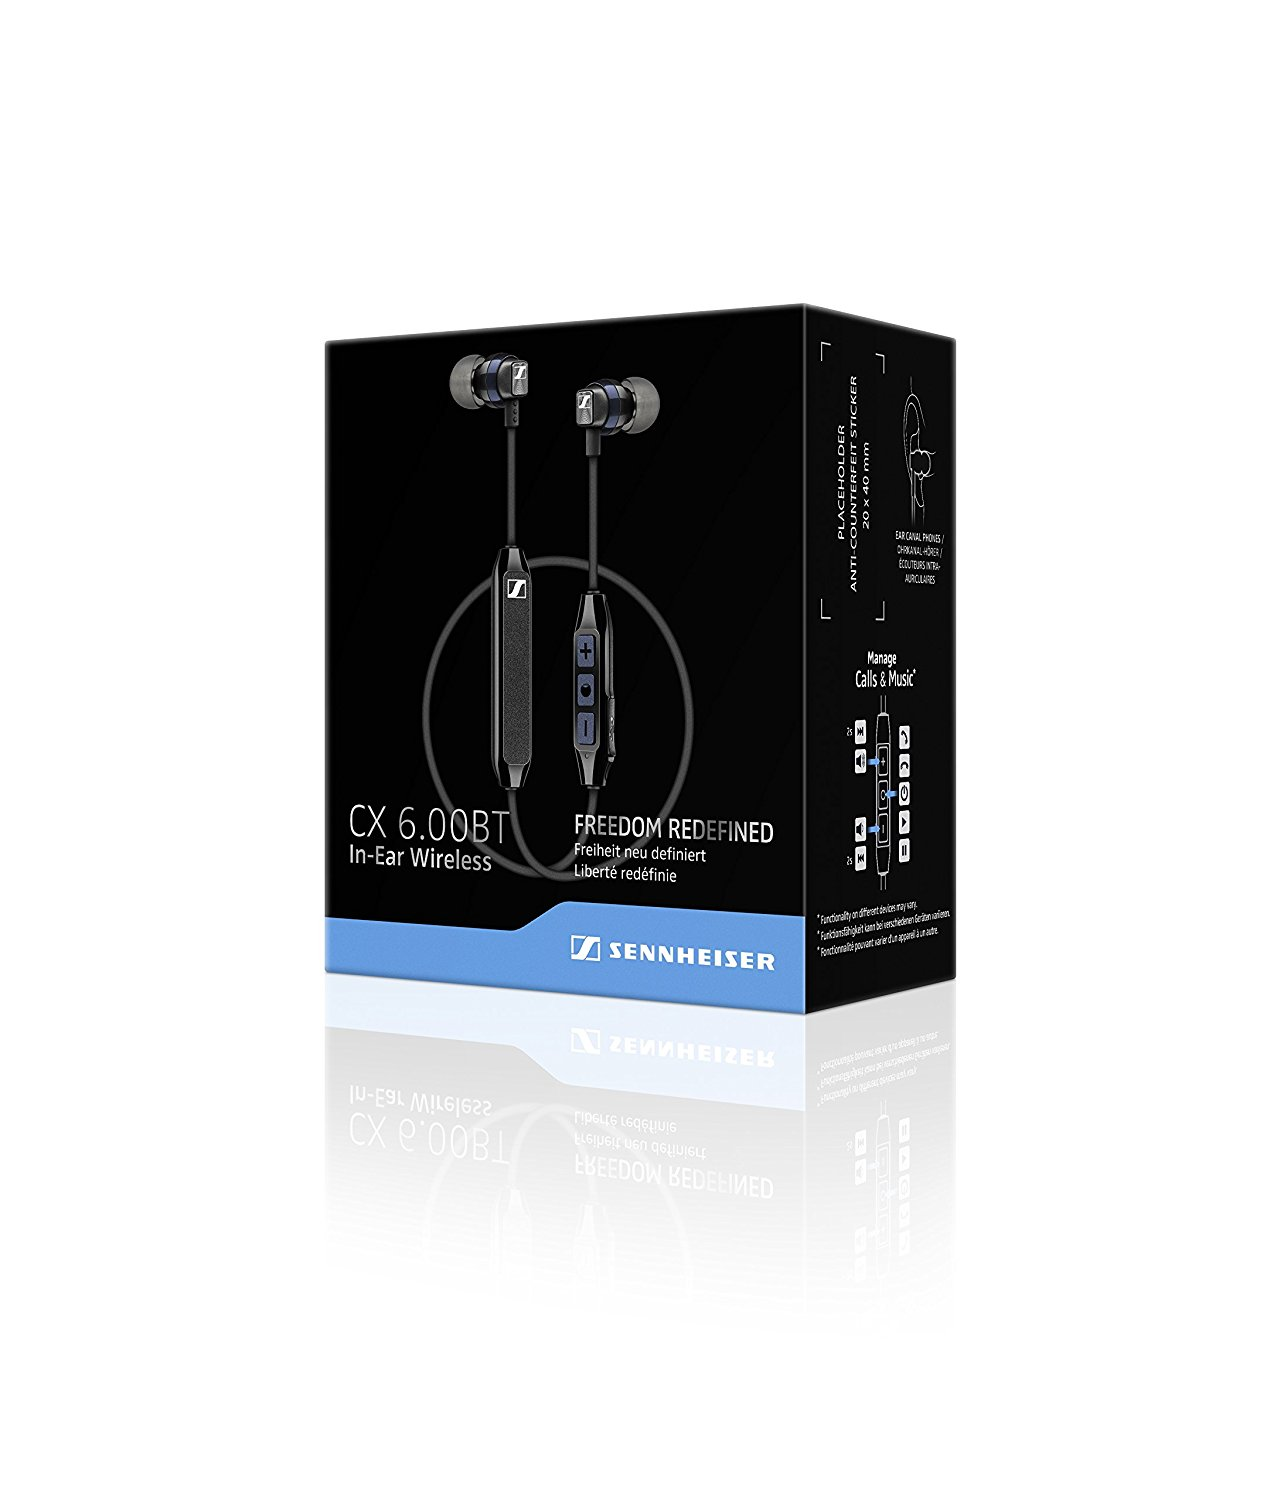 Sennheiser CX 6.00BT auriculares in-ear inalambricos